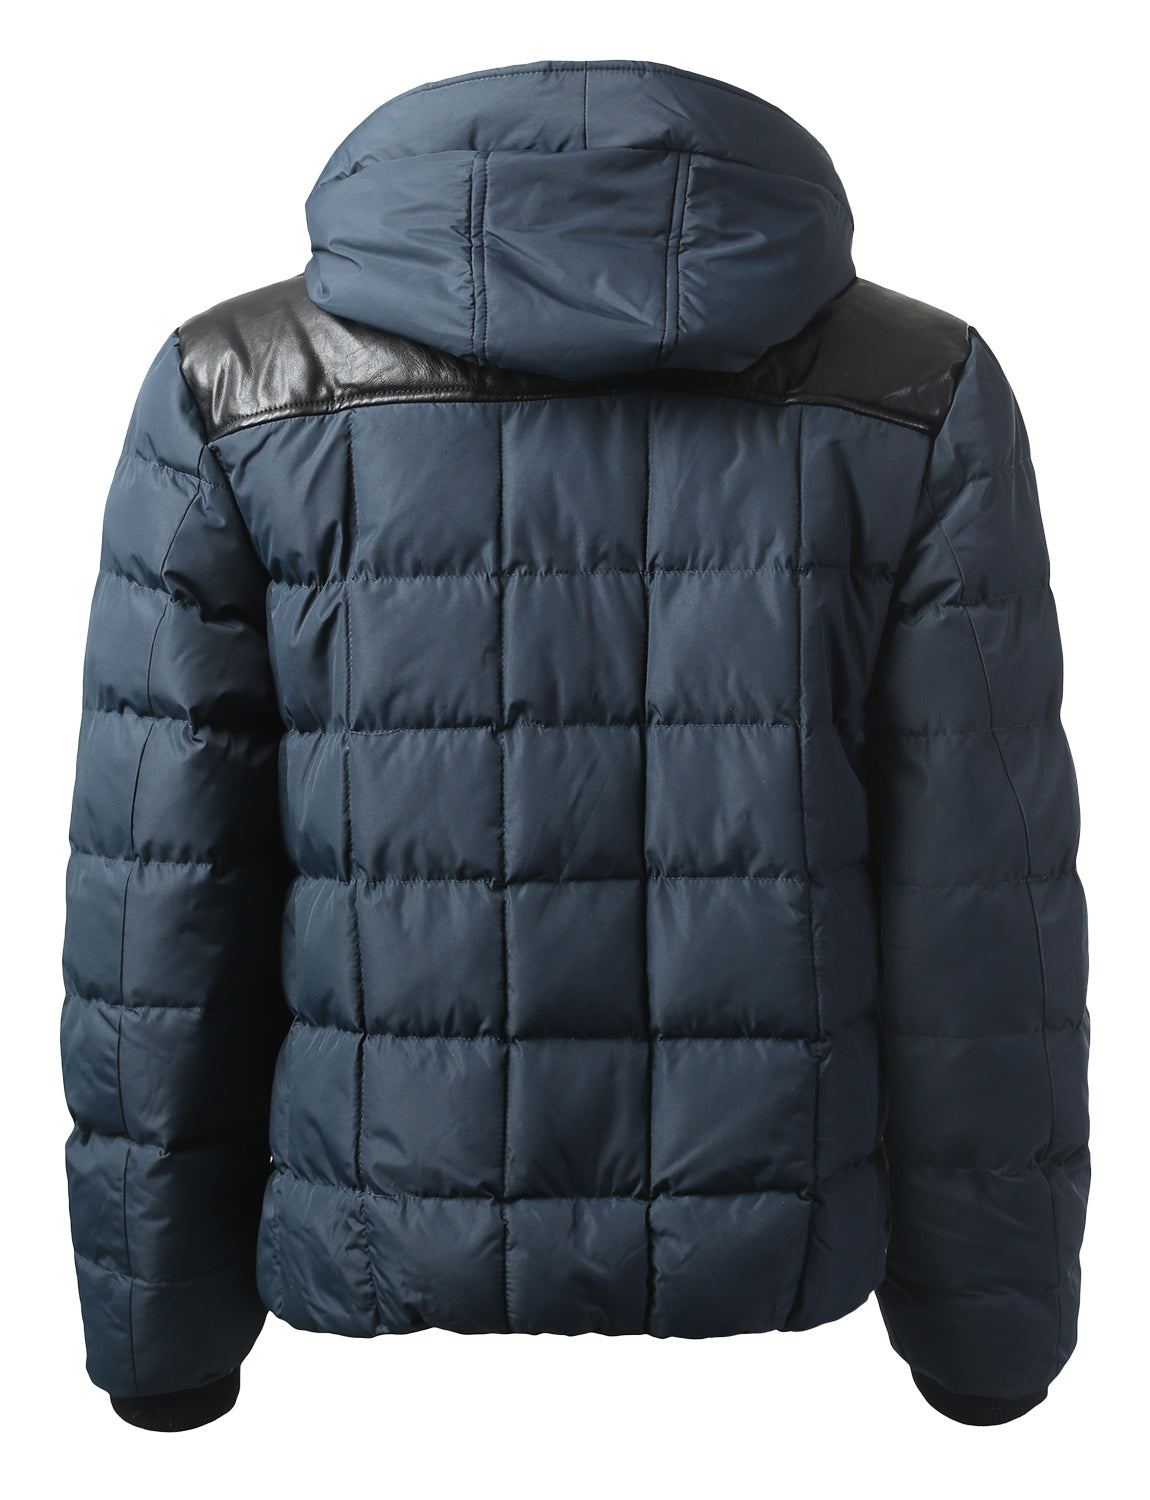 NAVY Motts Square Quilted Puffer Jacket - URBANCREWS